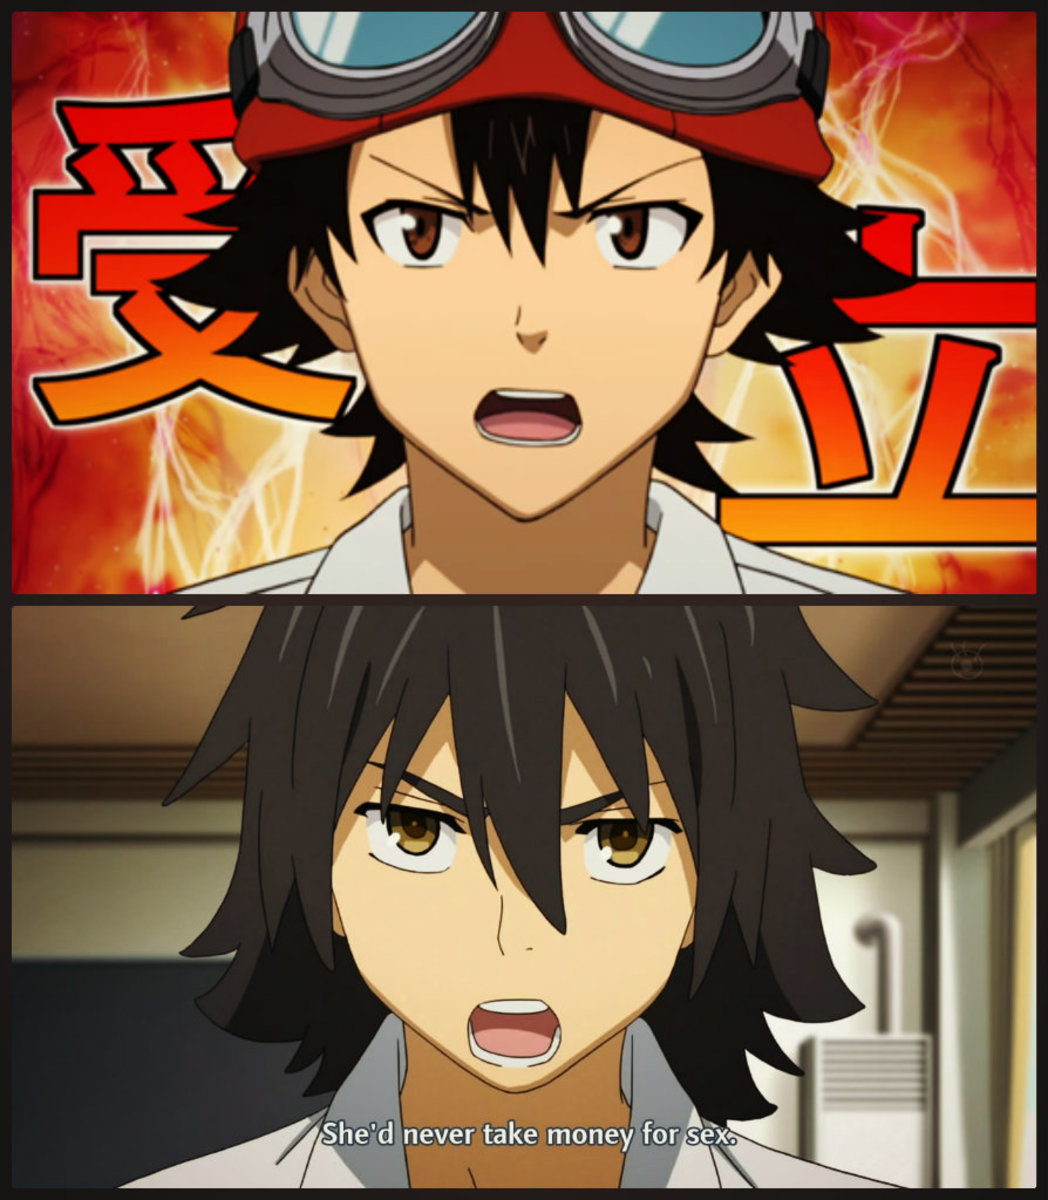 anime-characters-who-look-so-alike-part-2